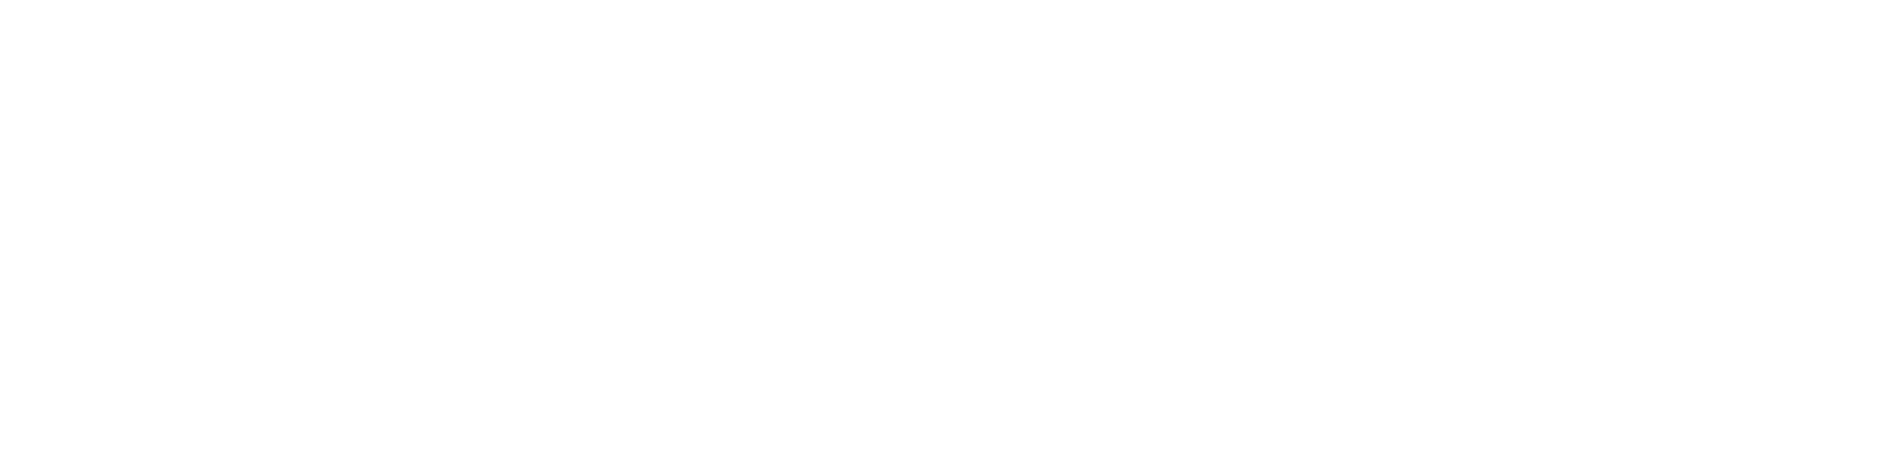 The new J12 - it's all about seconds